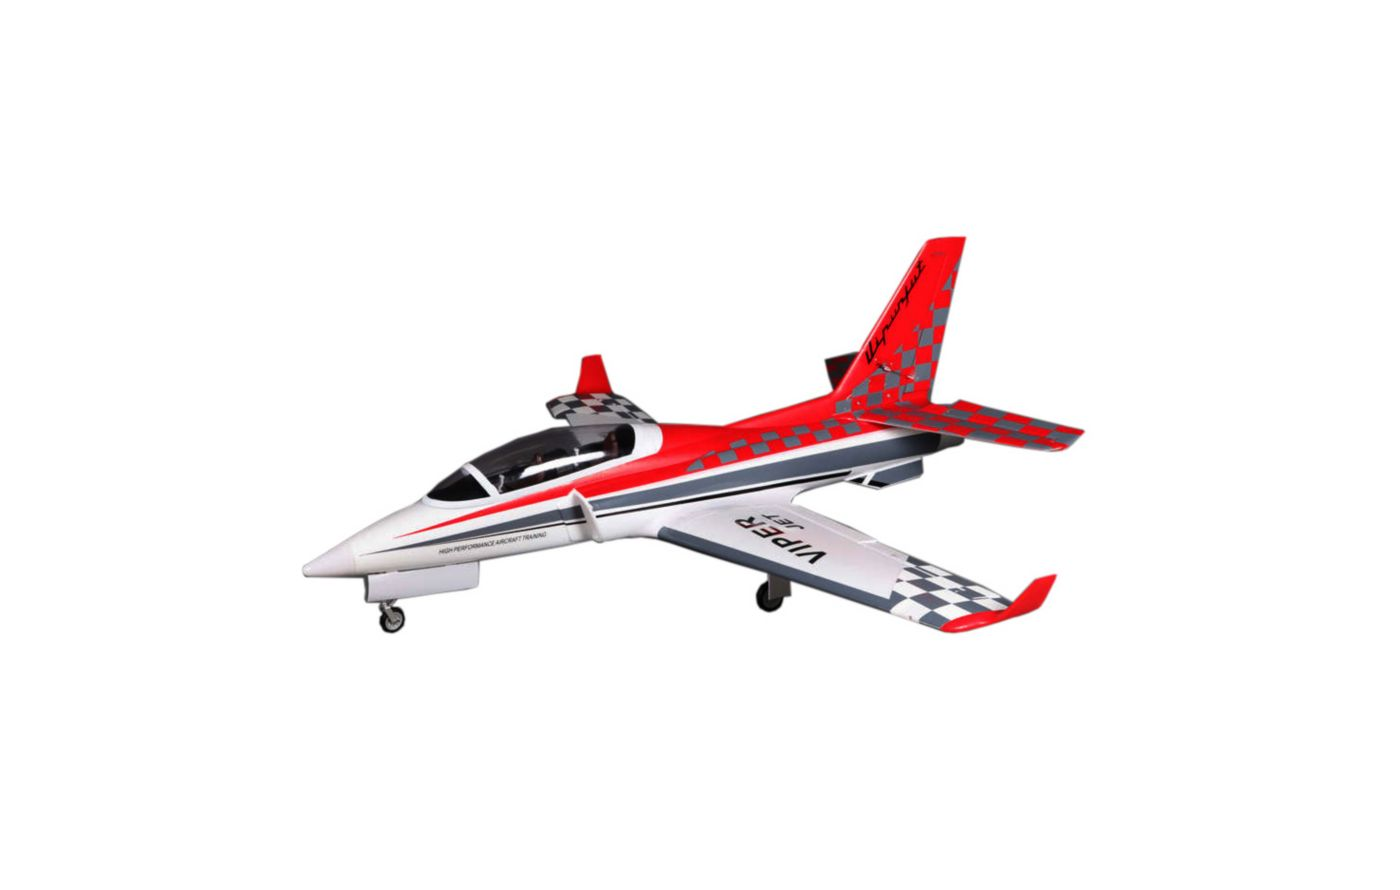 Image for Viper Jet Red PNP, EPO from Force RC